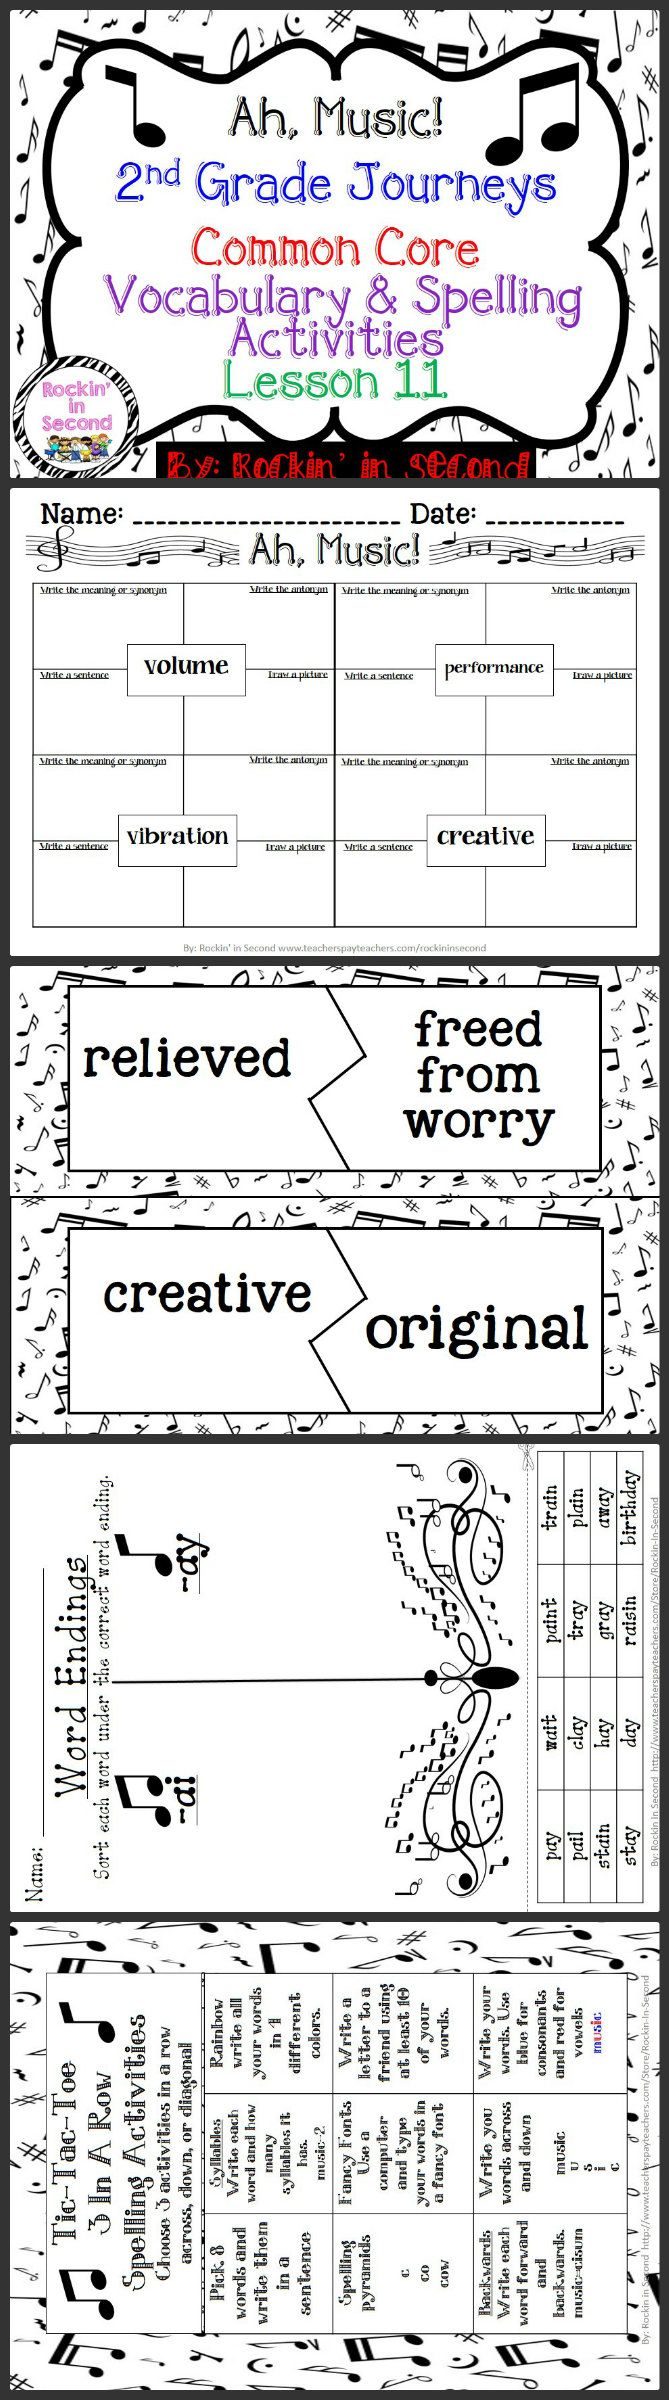 Ah! Music: Unit 3.2 Lesson 12 Spelling & Vocabulary Activities  In this bundle you will receive Vocabulary Puzzles, Vocabulary 4 square sheets, Spelling lists for student's agendas, Tic-Tac-Toe spelling activity, Word Sort, and Rainbow Write spelling paper.  These all are aligned with Common Core and goes along with Journeys.  Please leave feedback and follow me on TPT for more fun and exciting activities.